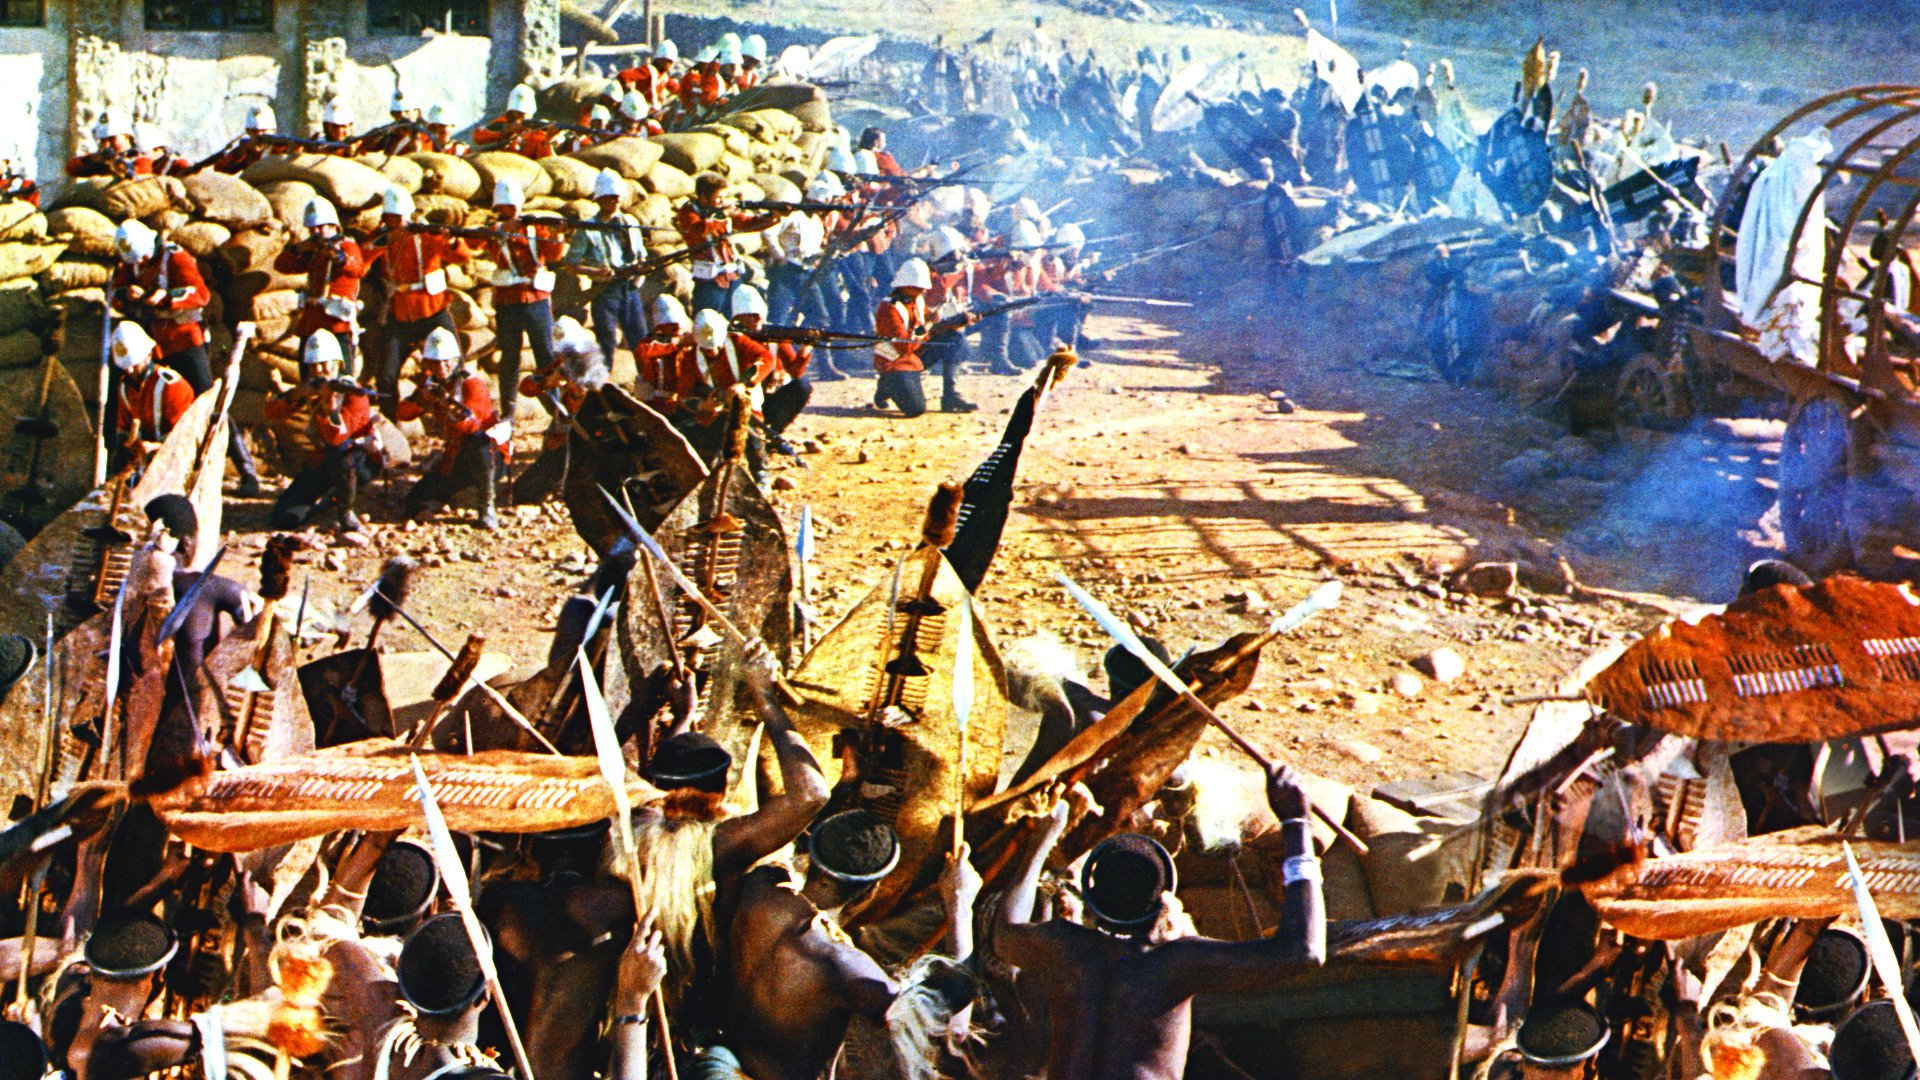 a review of zulu a 1964 epic war film depicting the anglo zulu war Zulu zulu is a 1964 epic war film depicting the battle of rorke's drift between the british army and the zulus in january 1879, during the anglo-zulu war.